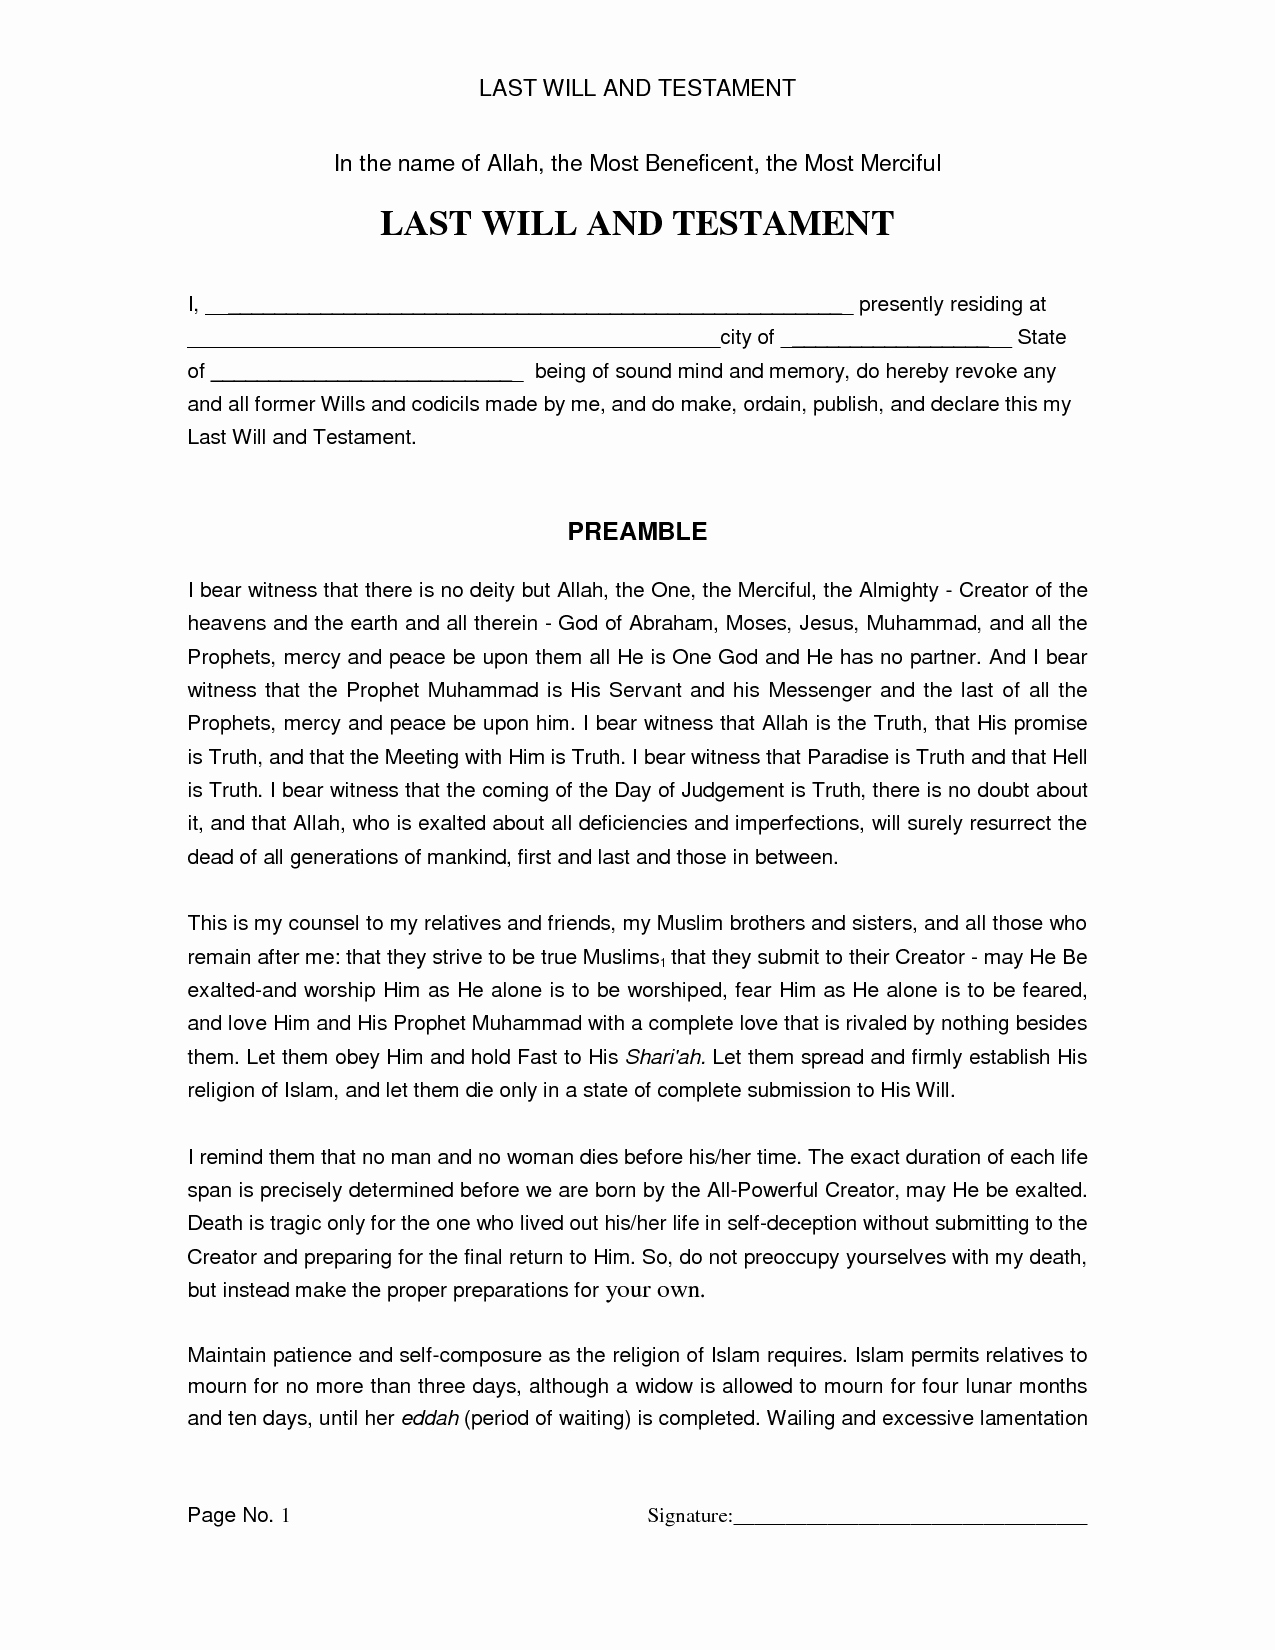 Last Will and Testament Template Microsoft Word Best Of Last Will and Testament Template